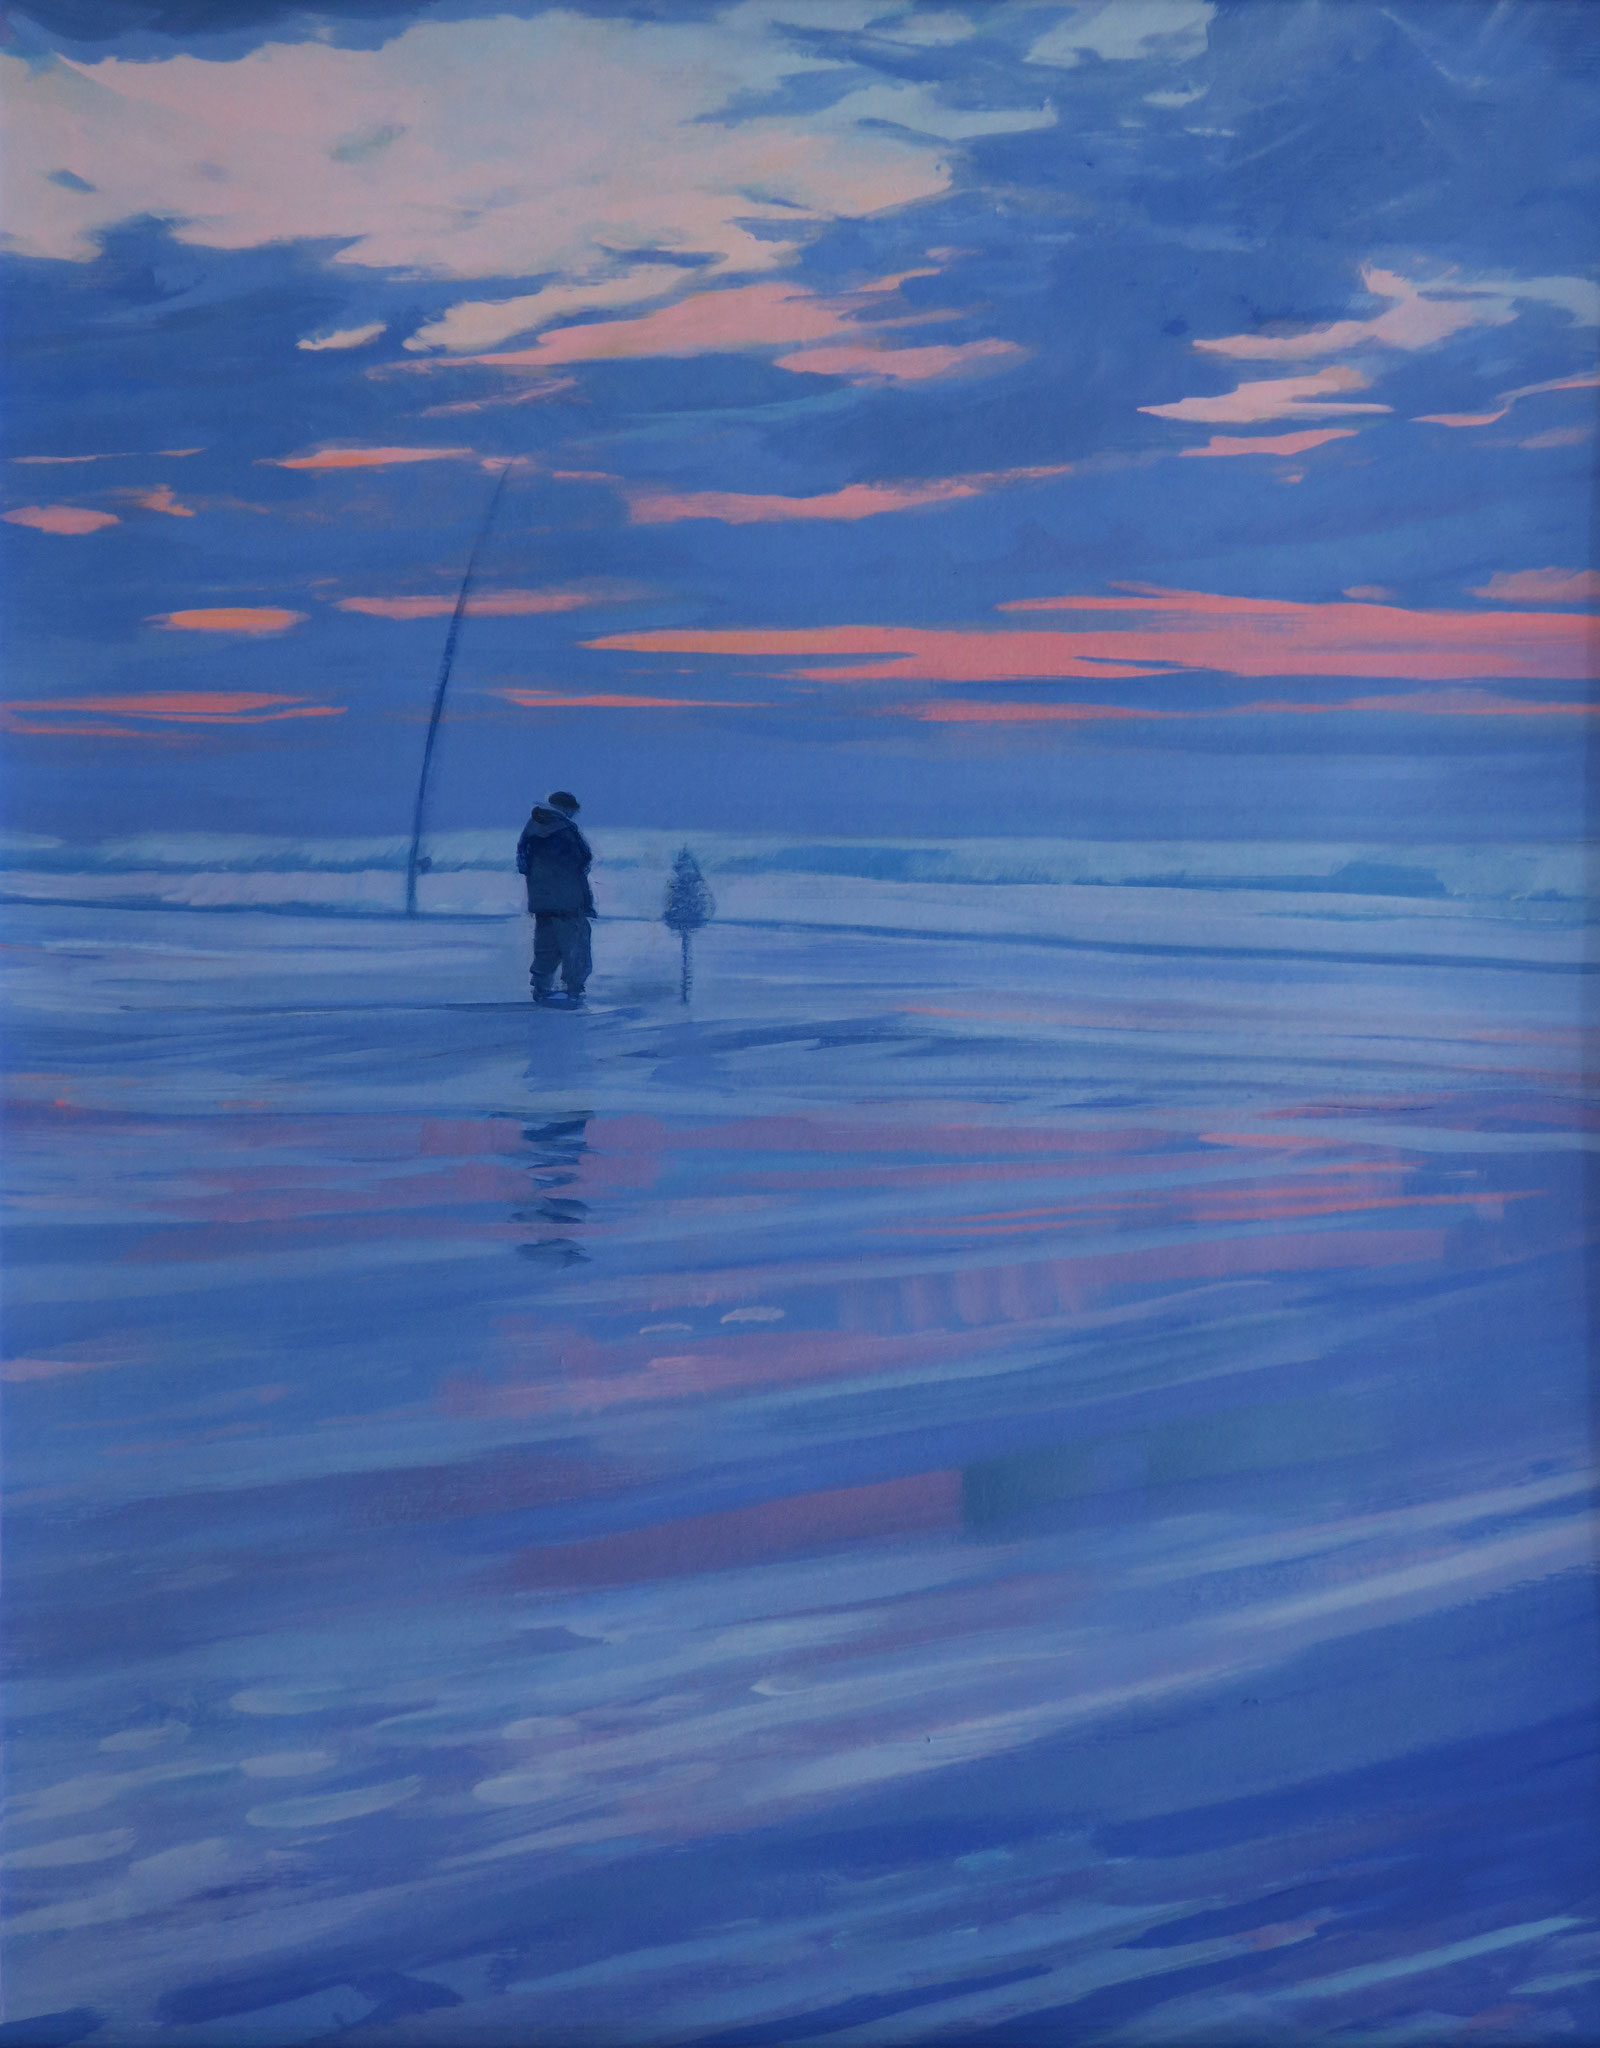 Fishing at dusk. Santander.39x49cm. Acrylic on paper.